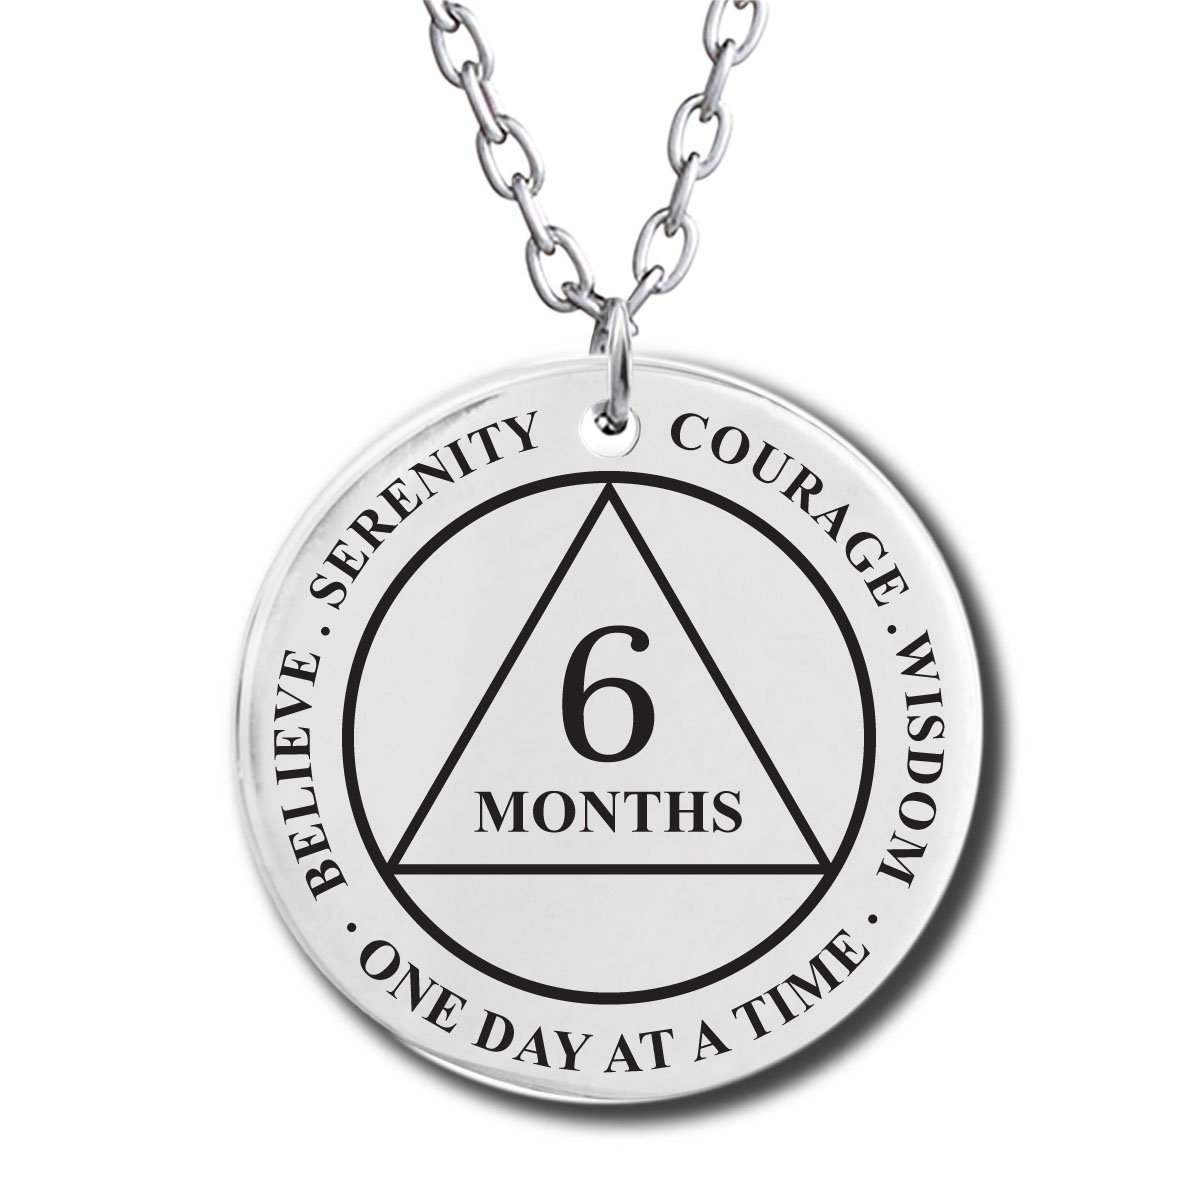 6 Month Sobriety Gifts - Recovery Medallion Necklace - Alcoholics Narcotics Anonymous AA NA Sobriety Pendant | Amazon.com